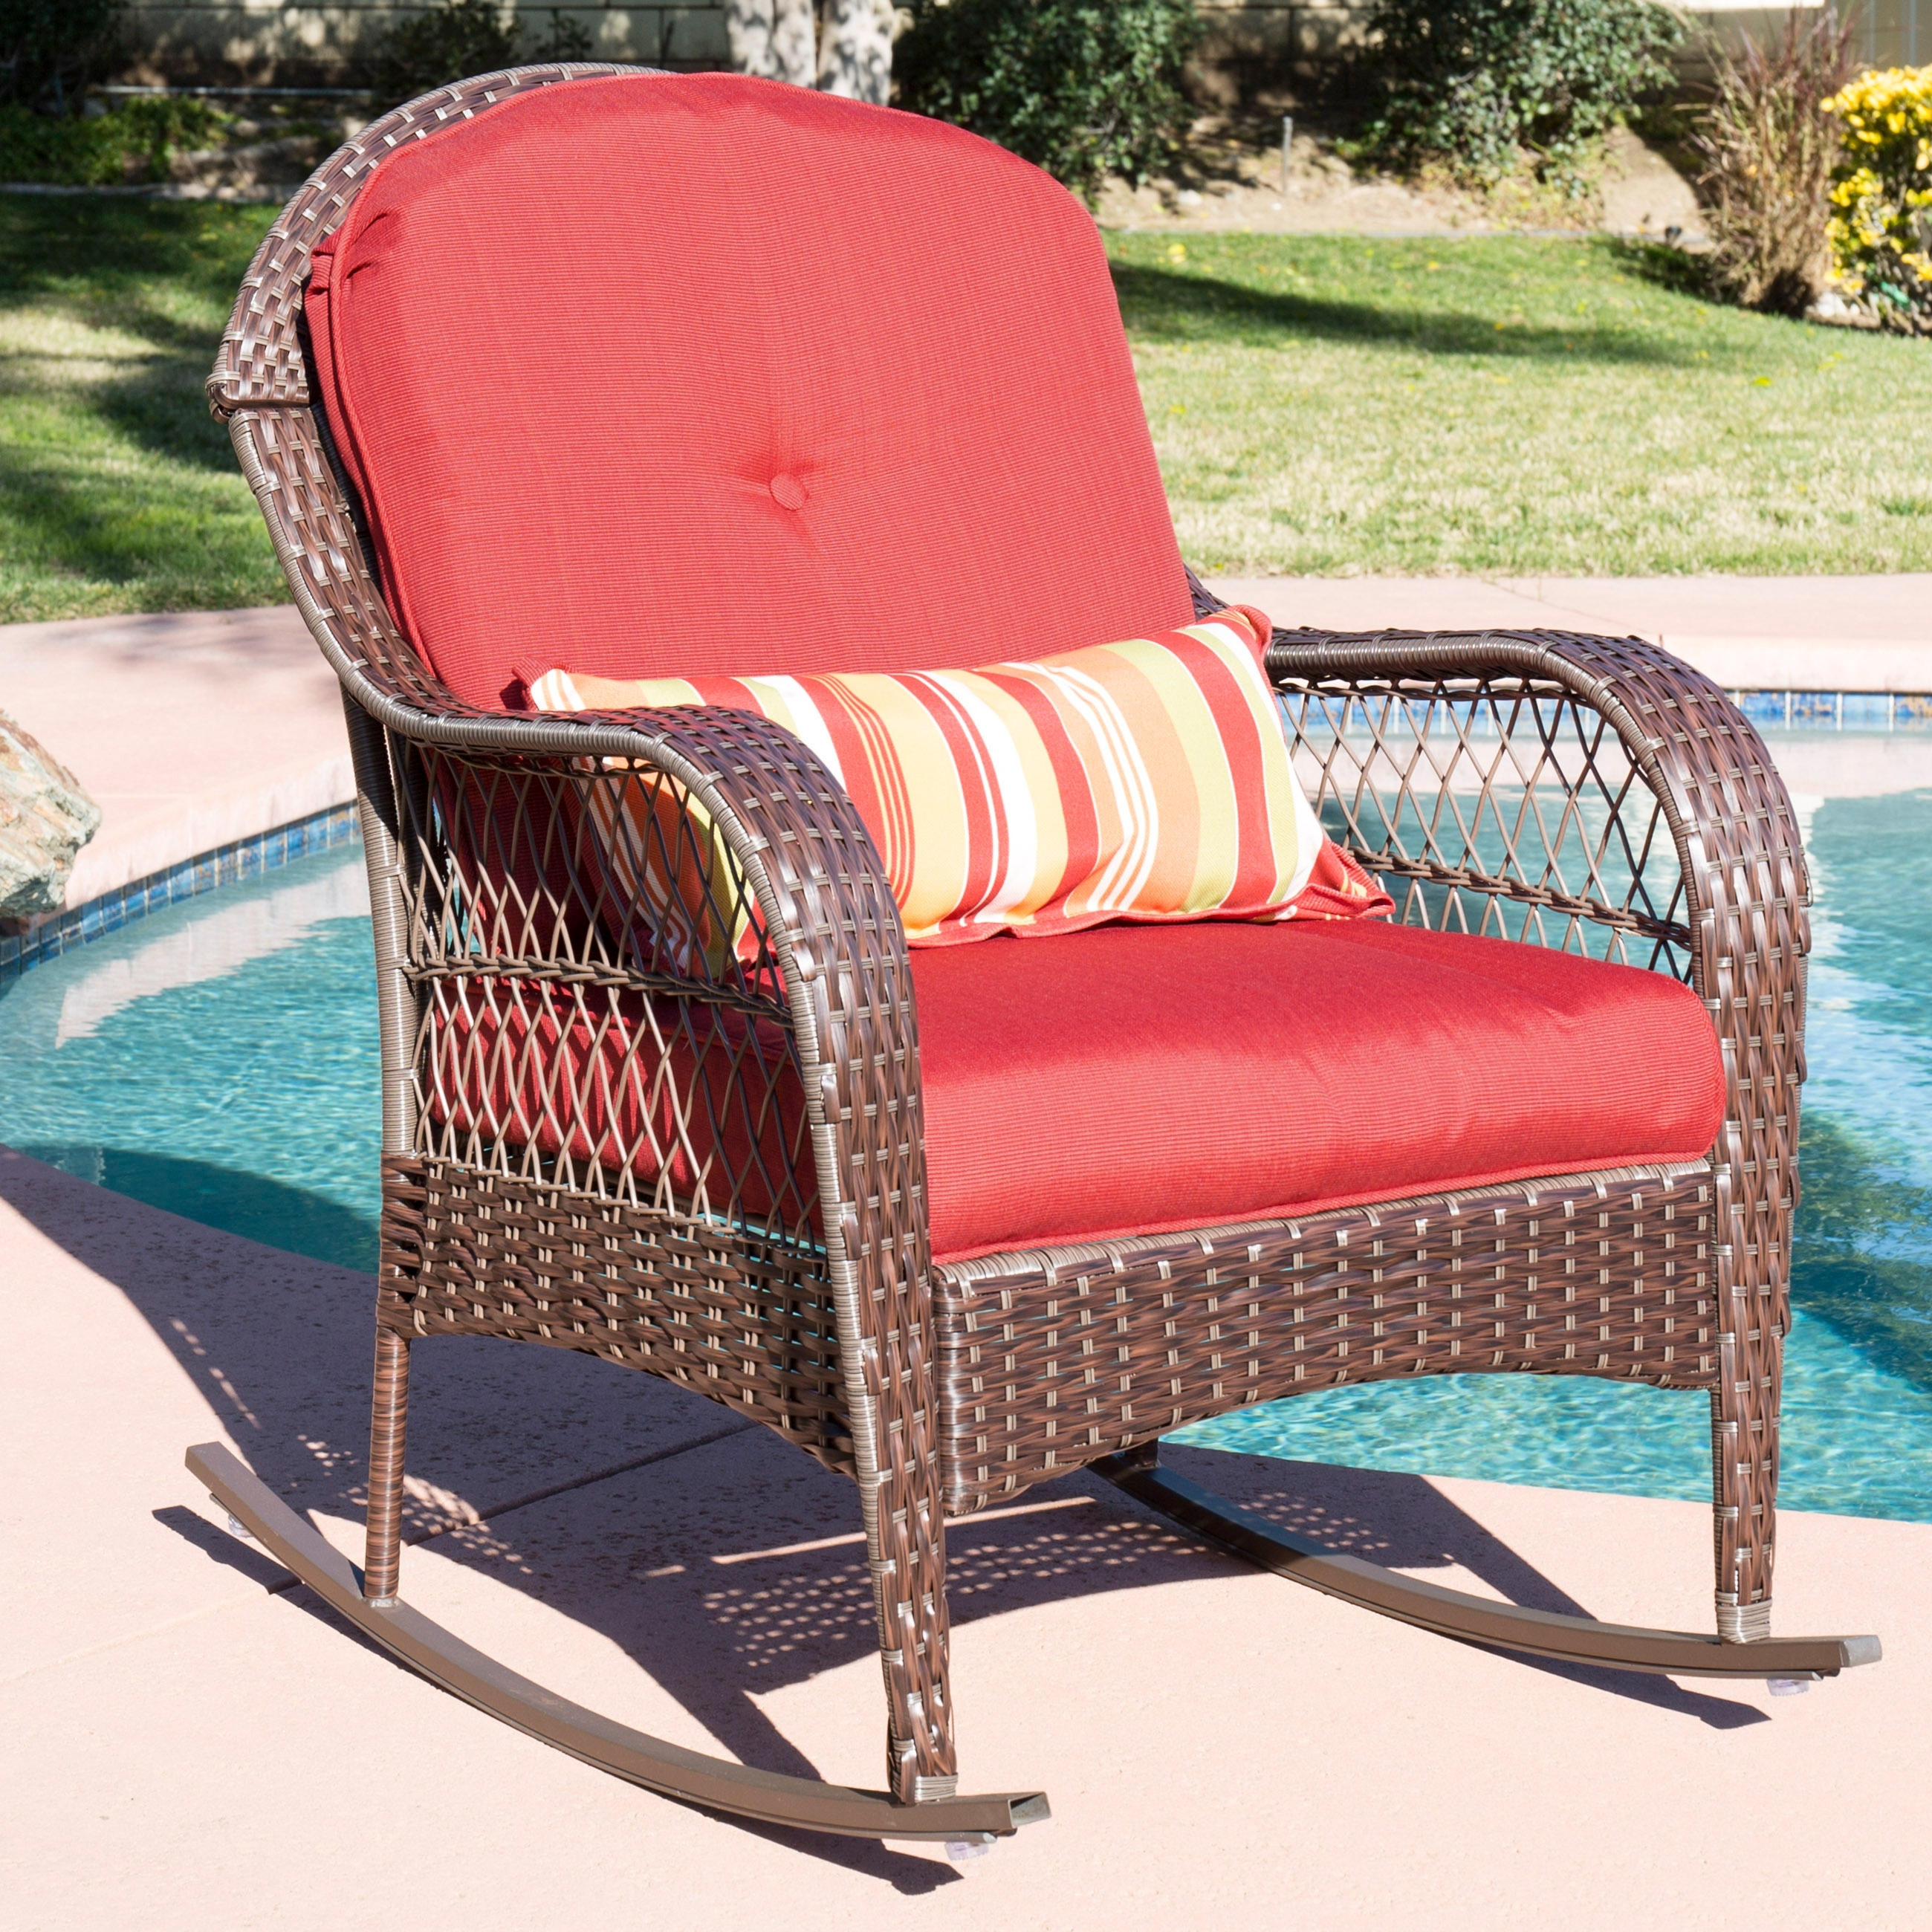 Best Choice Products Wicker Rocking Chair Patio Porch Deck Furniture Within Trendy Outdoor Wicker Rocking Chairs (View 14 of 15)